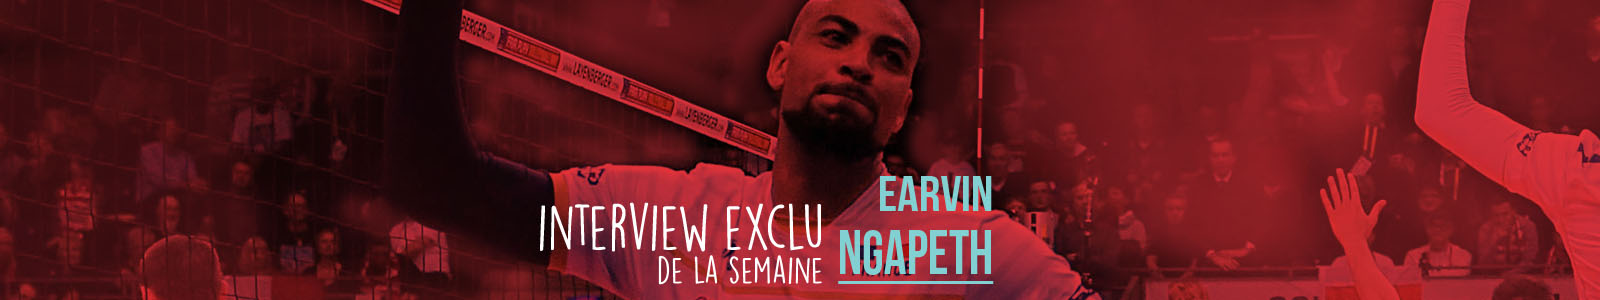 INTERVIEW EXCLU EARVIN NGAPETH